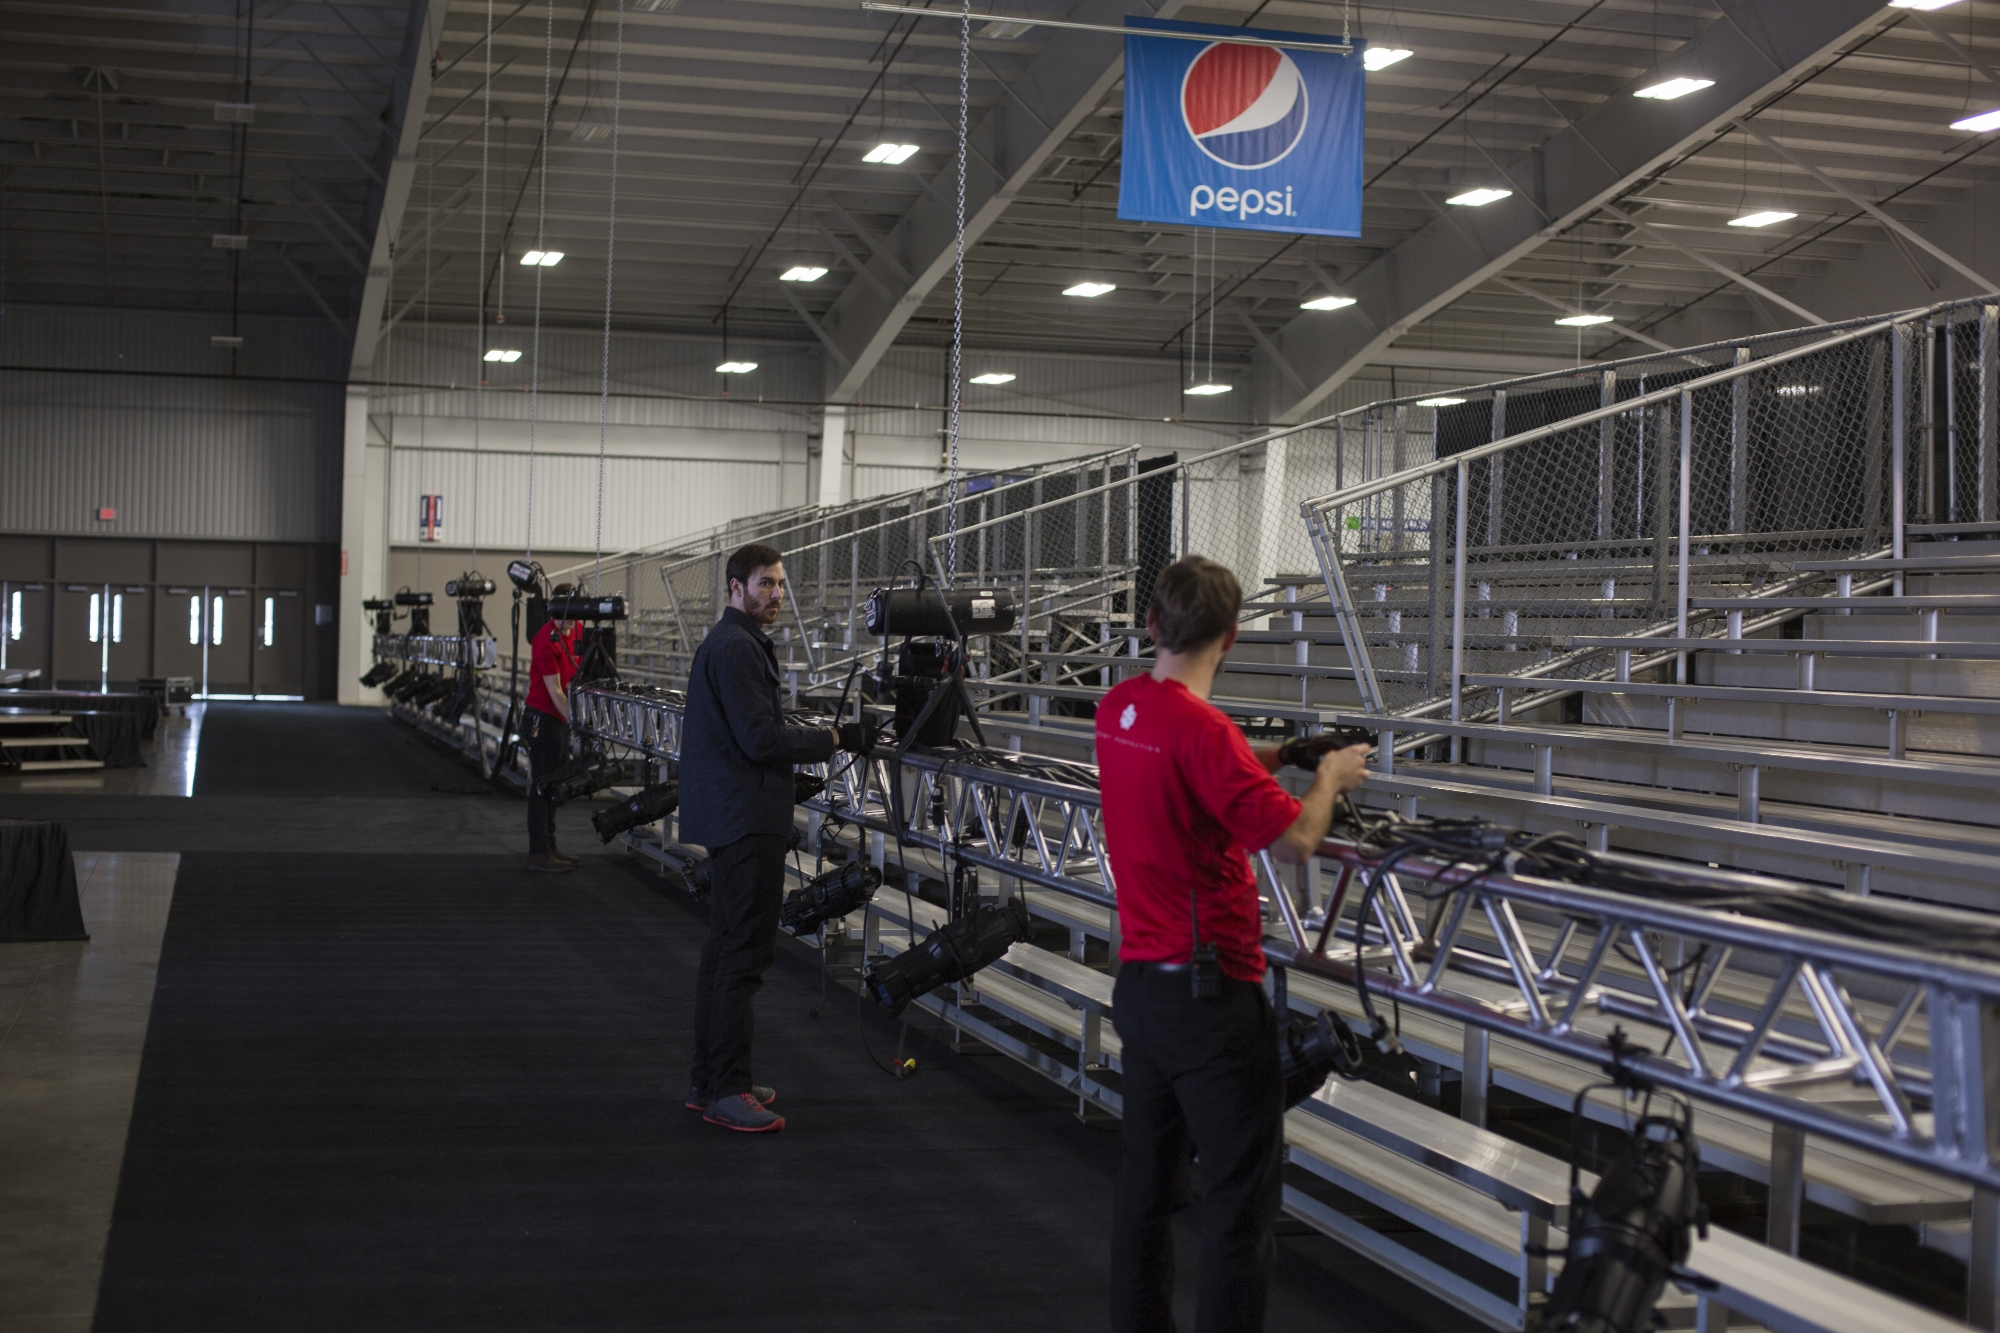 LSC Technicians assemble fixtures and cables on a lighting truss